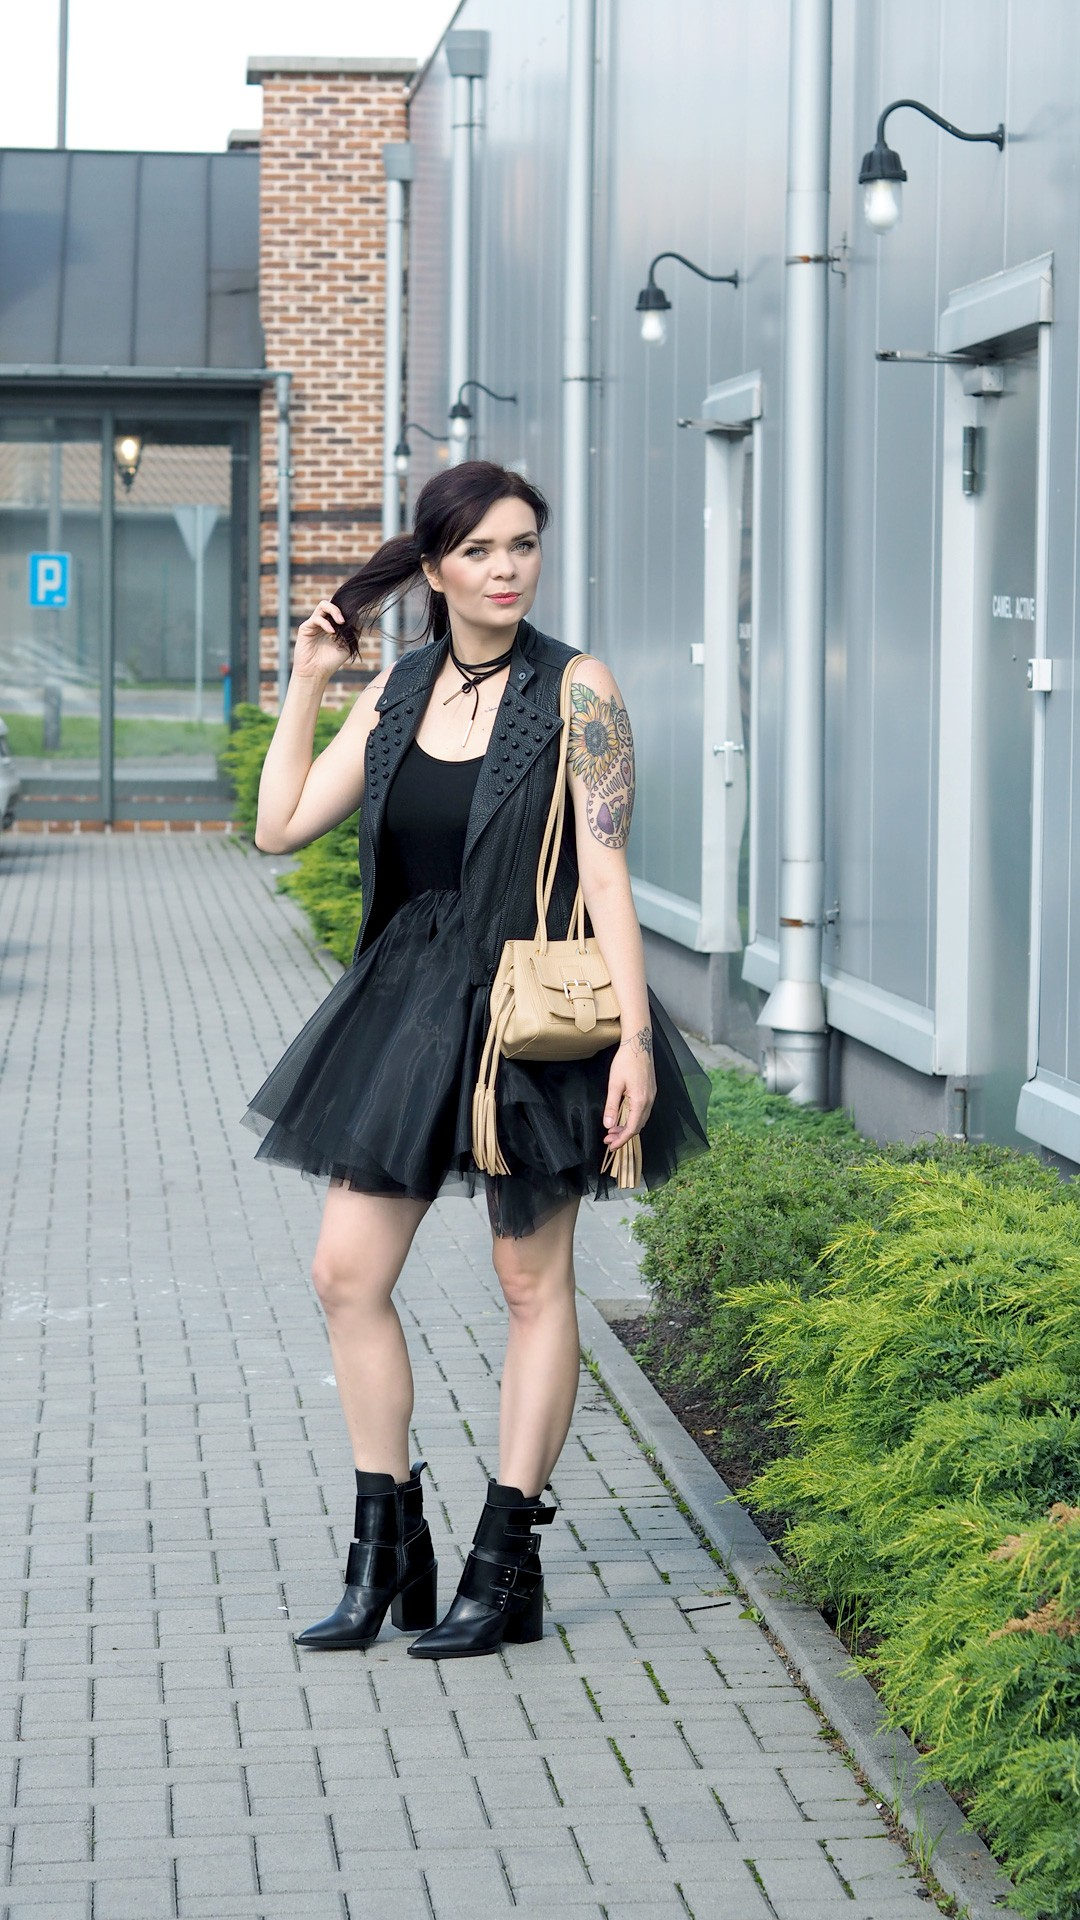 lidia kalita total look (2)